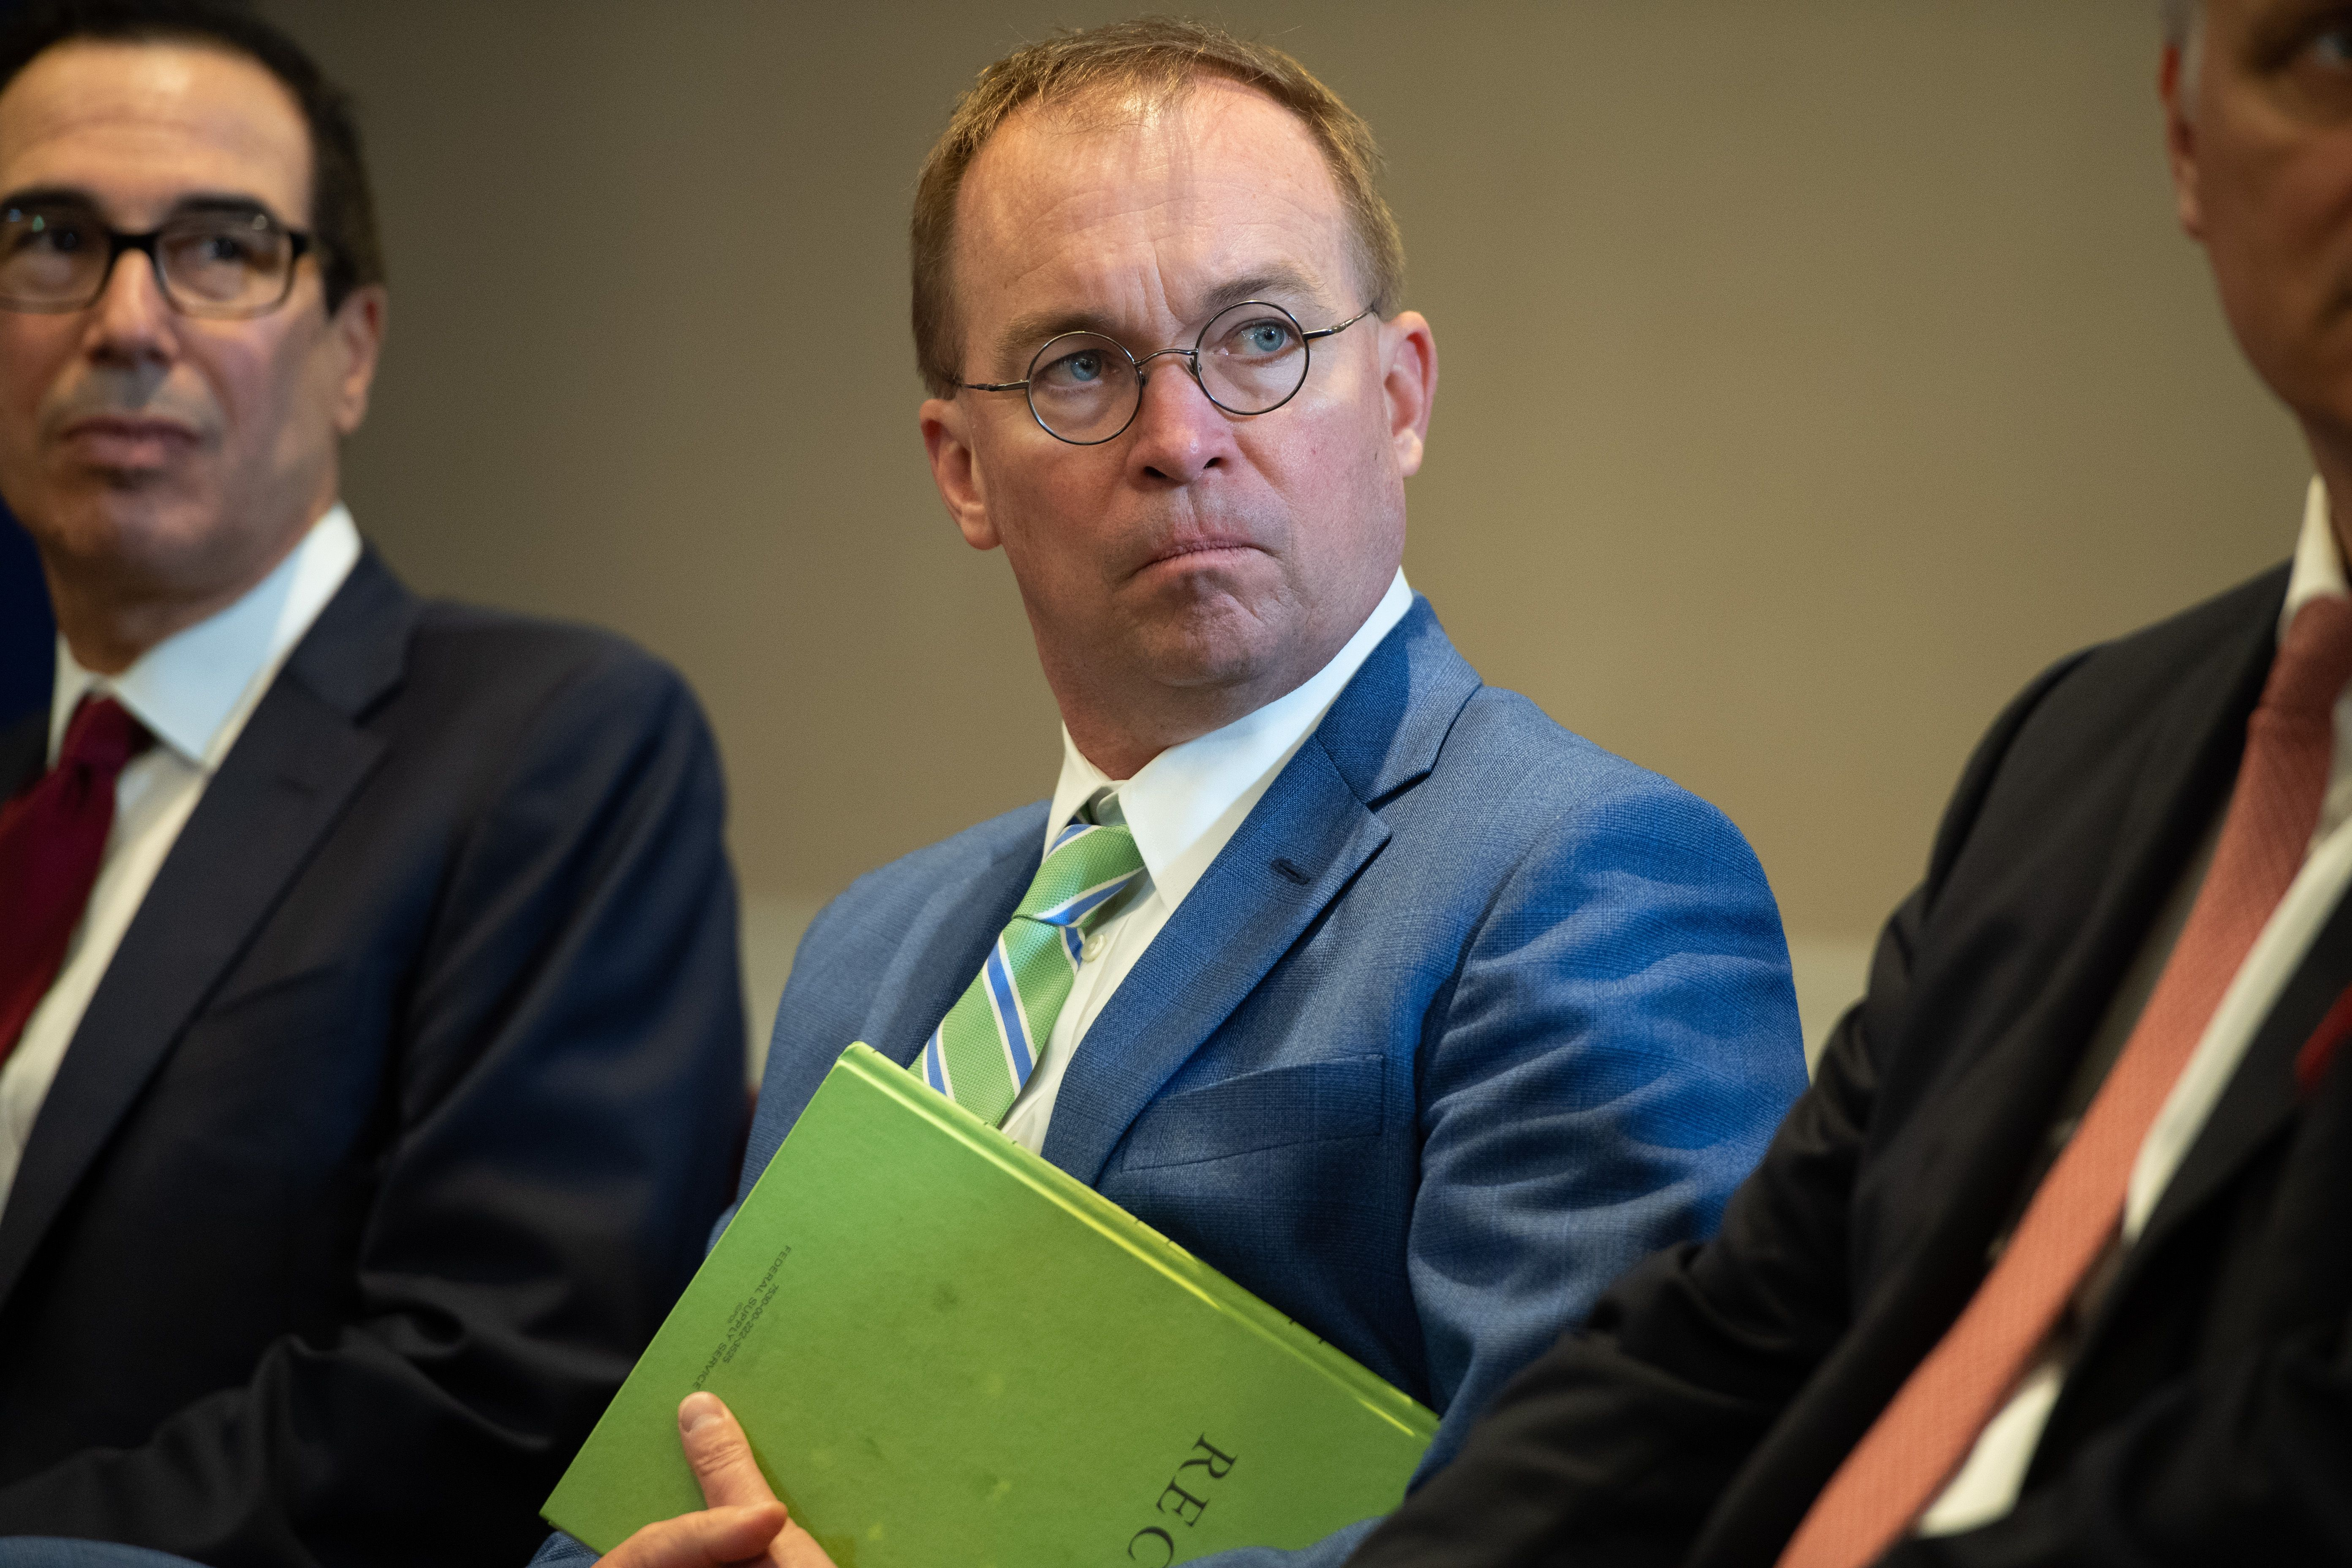 White House Chief of Staff Mick Mulvaney attends a meeting between US President Donald Trump and Iraqi Prime Minister Adil Abdul-Mahdi in New York on September 24, 2019. (Saul Loeb/AFP/Getty Images)